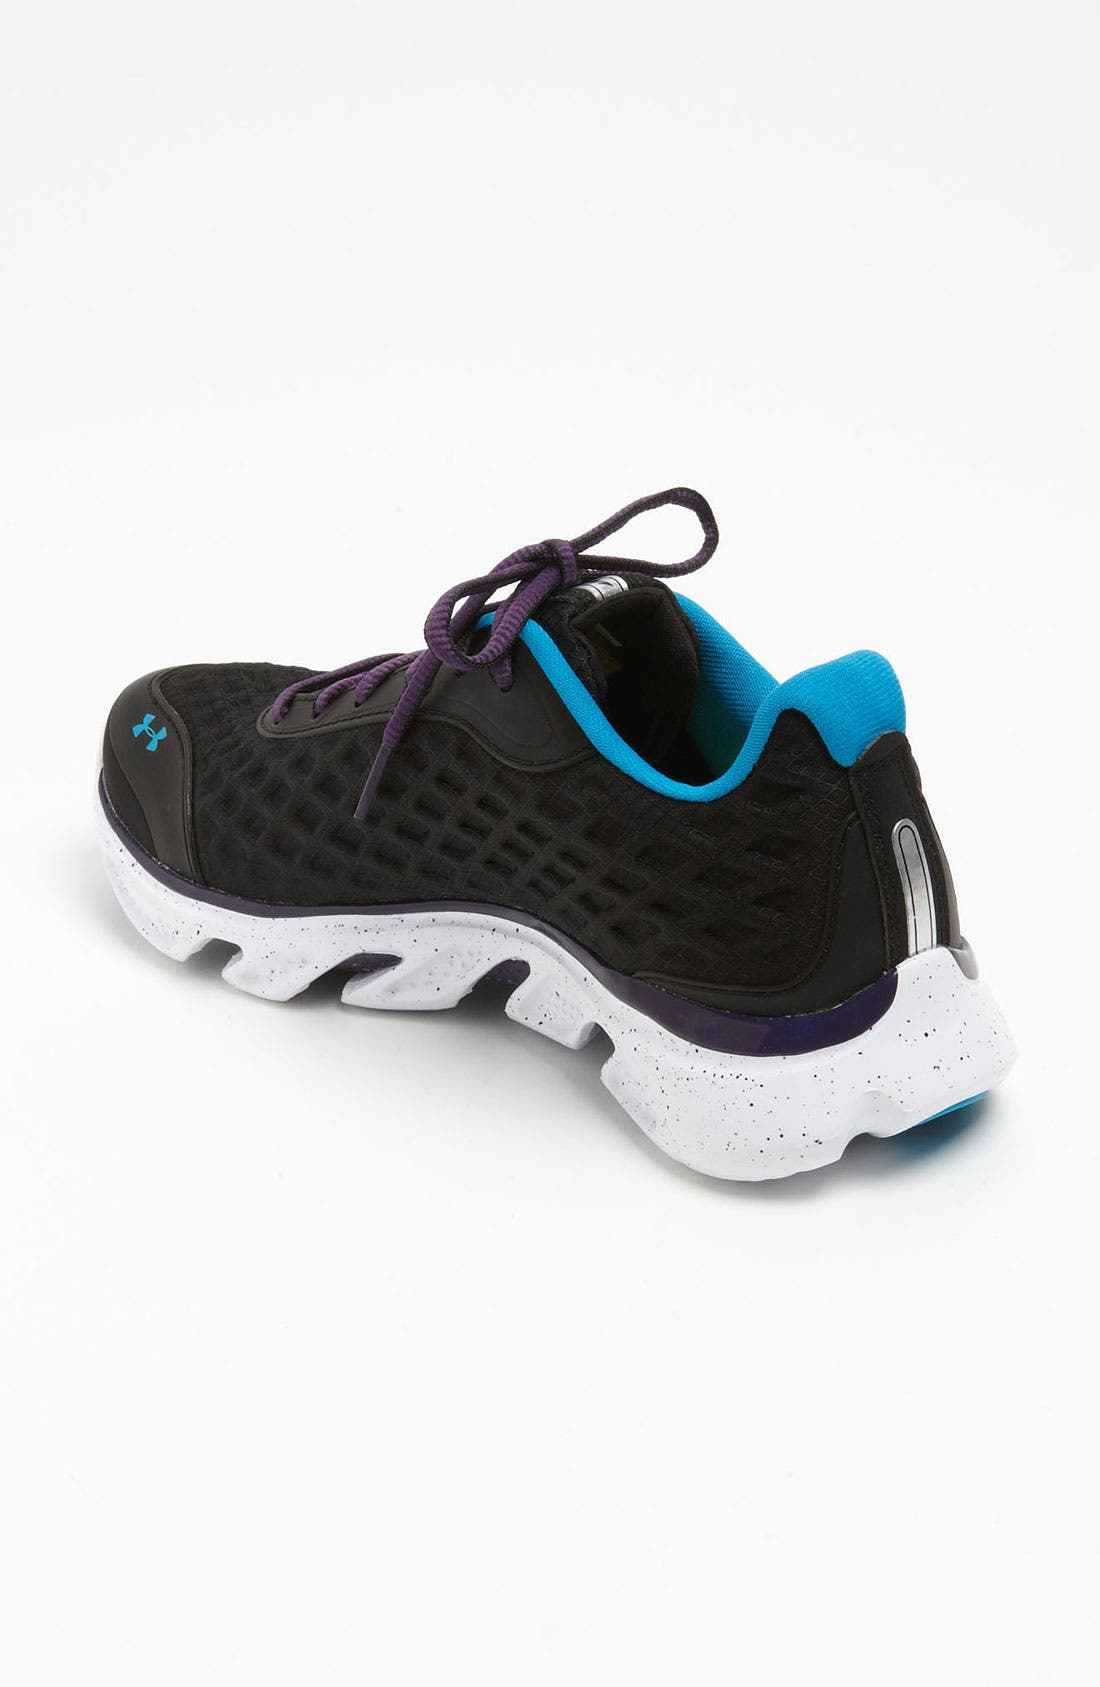 Alternate Image 2  - Under Armour 'Spine RPM' Running Shoe (Women)